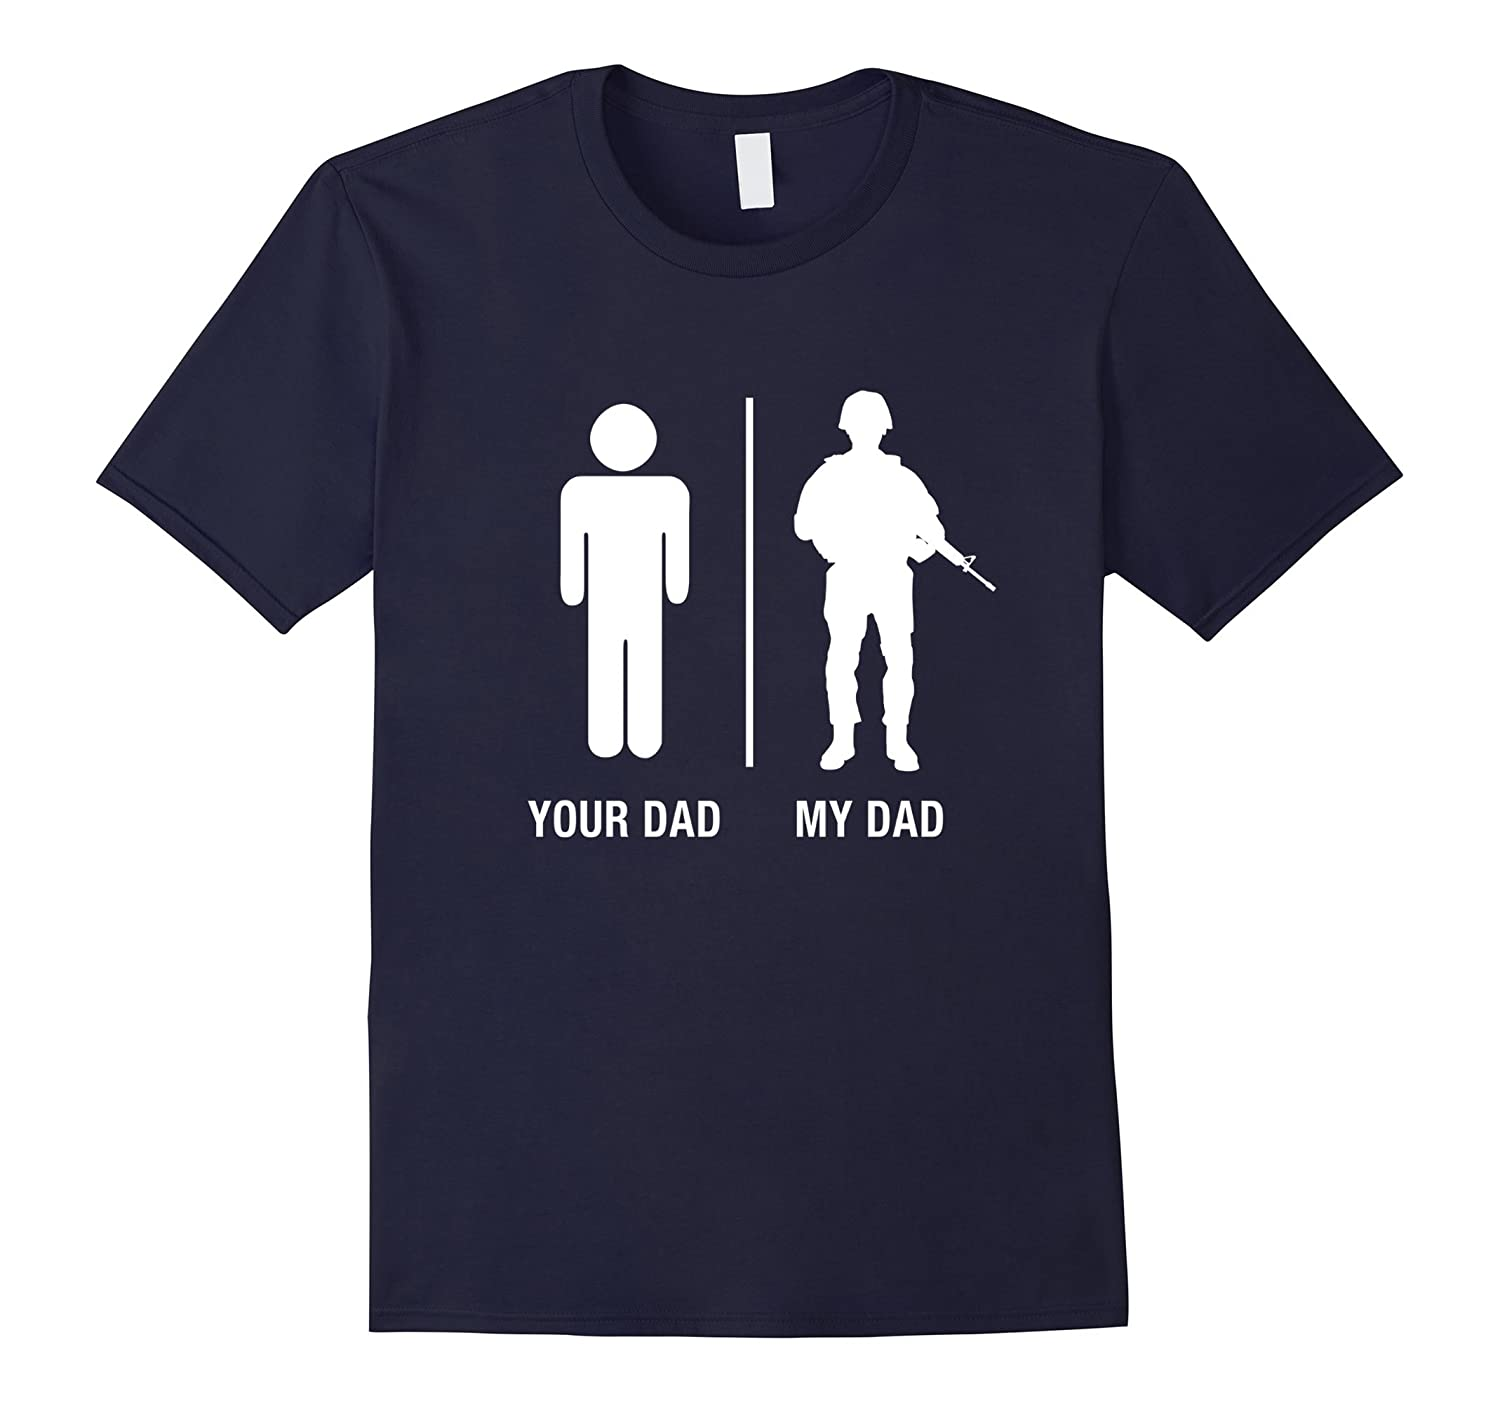 Your Dad My Dad T Shirt Patriotic US Military-PL